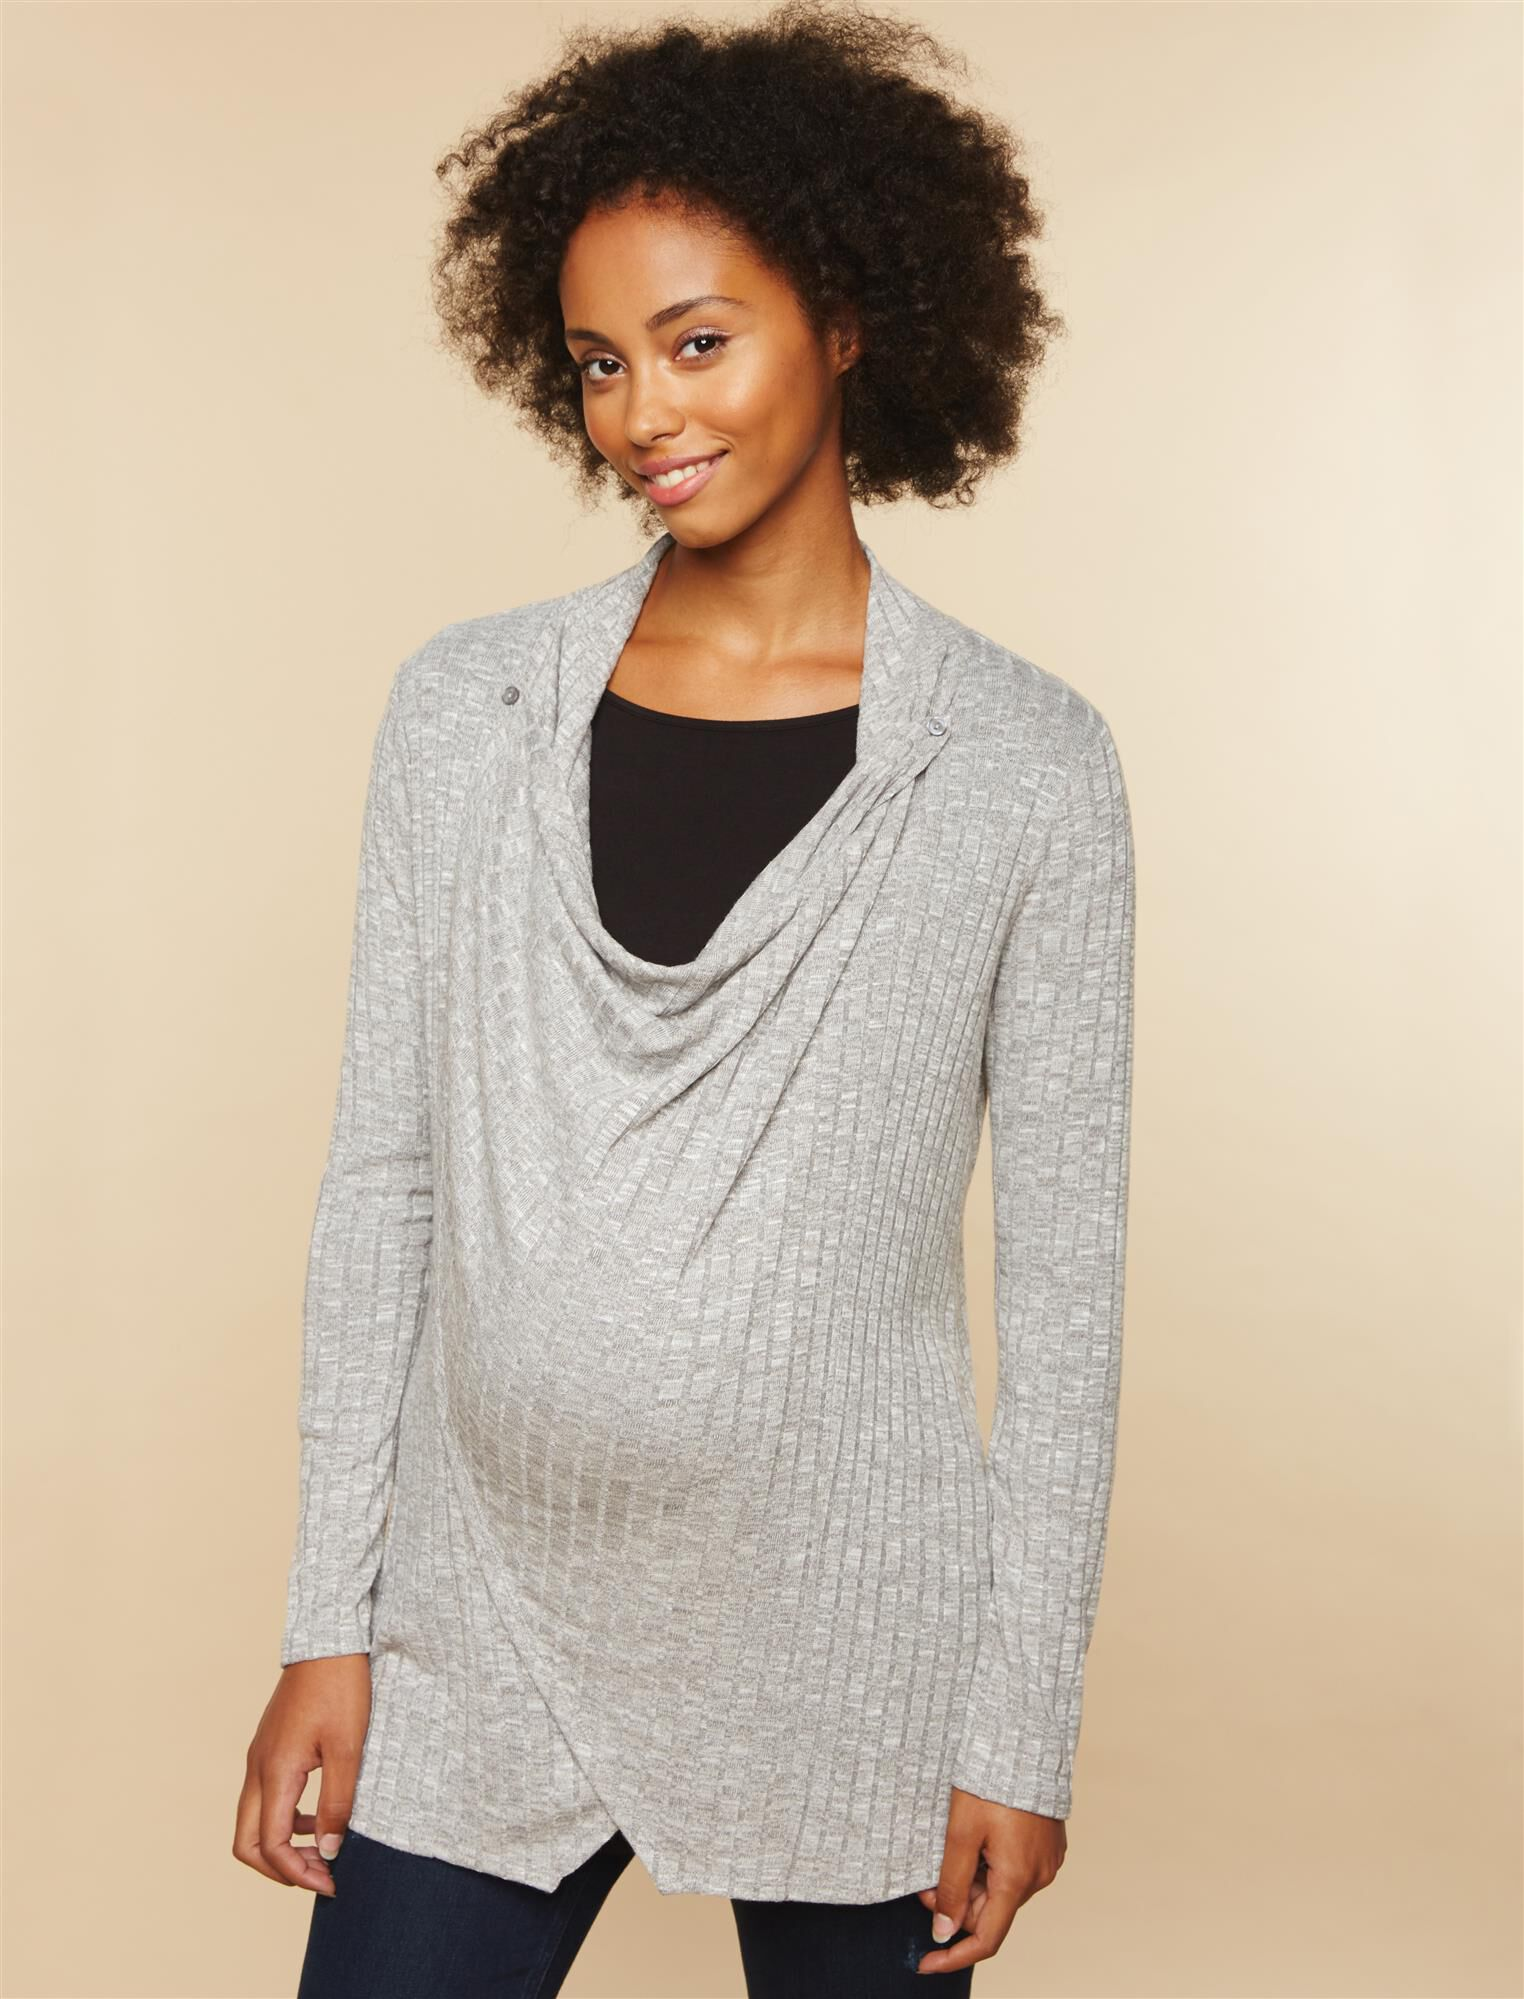 Pull Over 2 Button Closure Nursing Cardigan